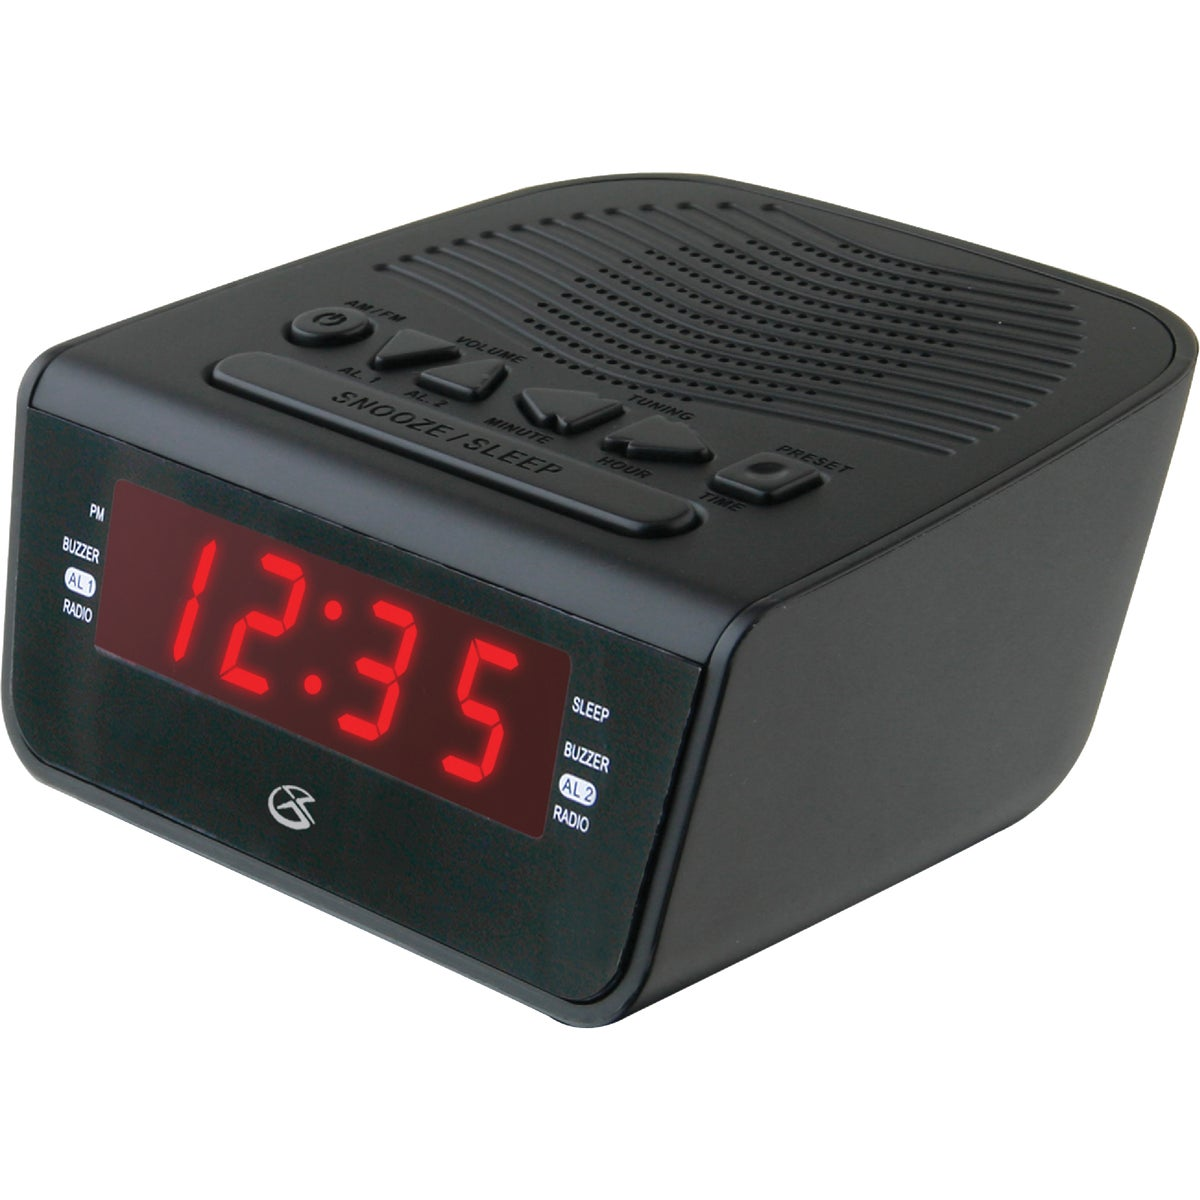 DUAL ALARM CLOCK RADIO - C224B by Dpi Inc